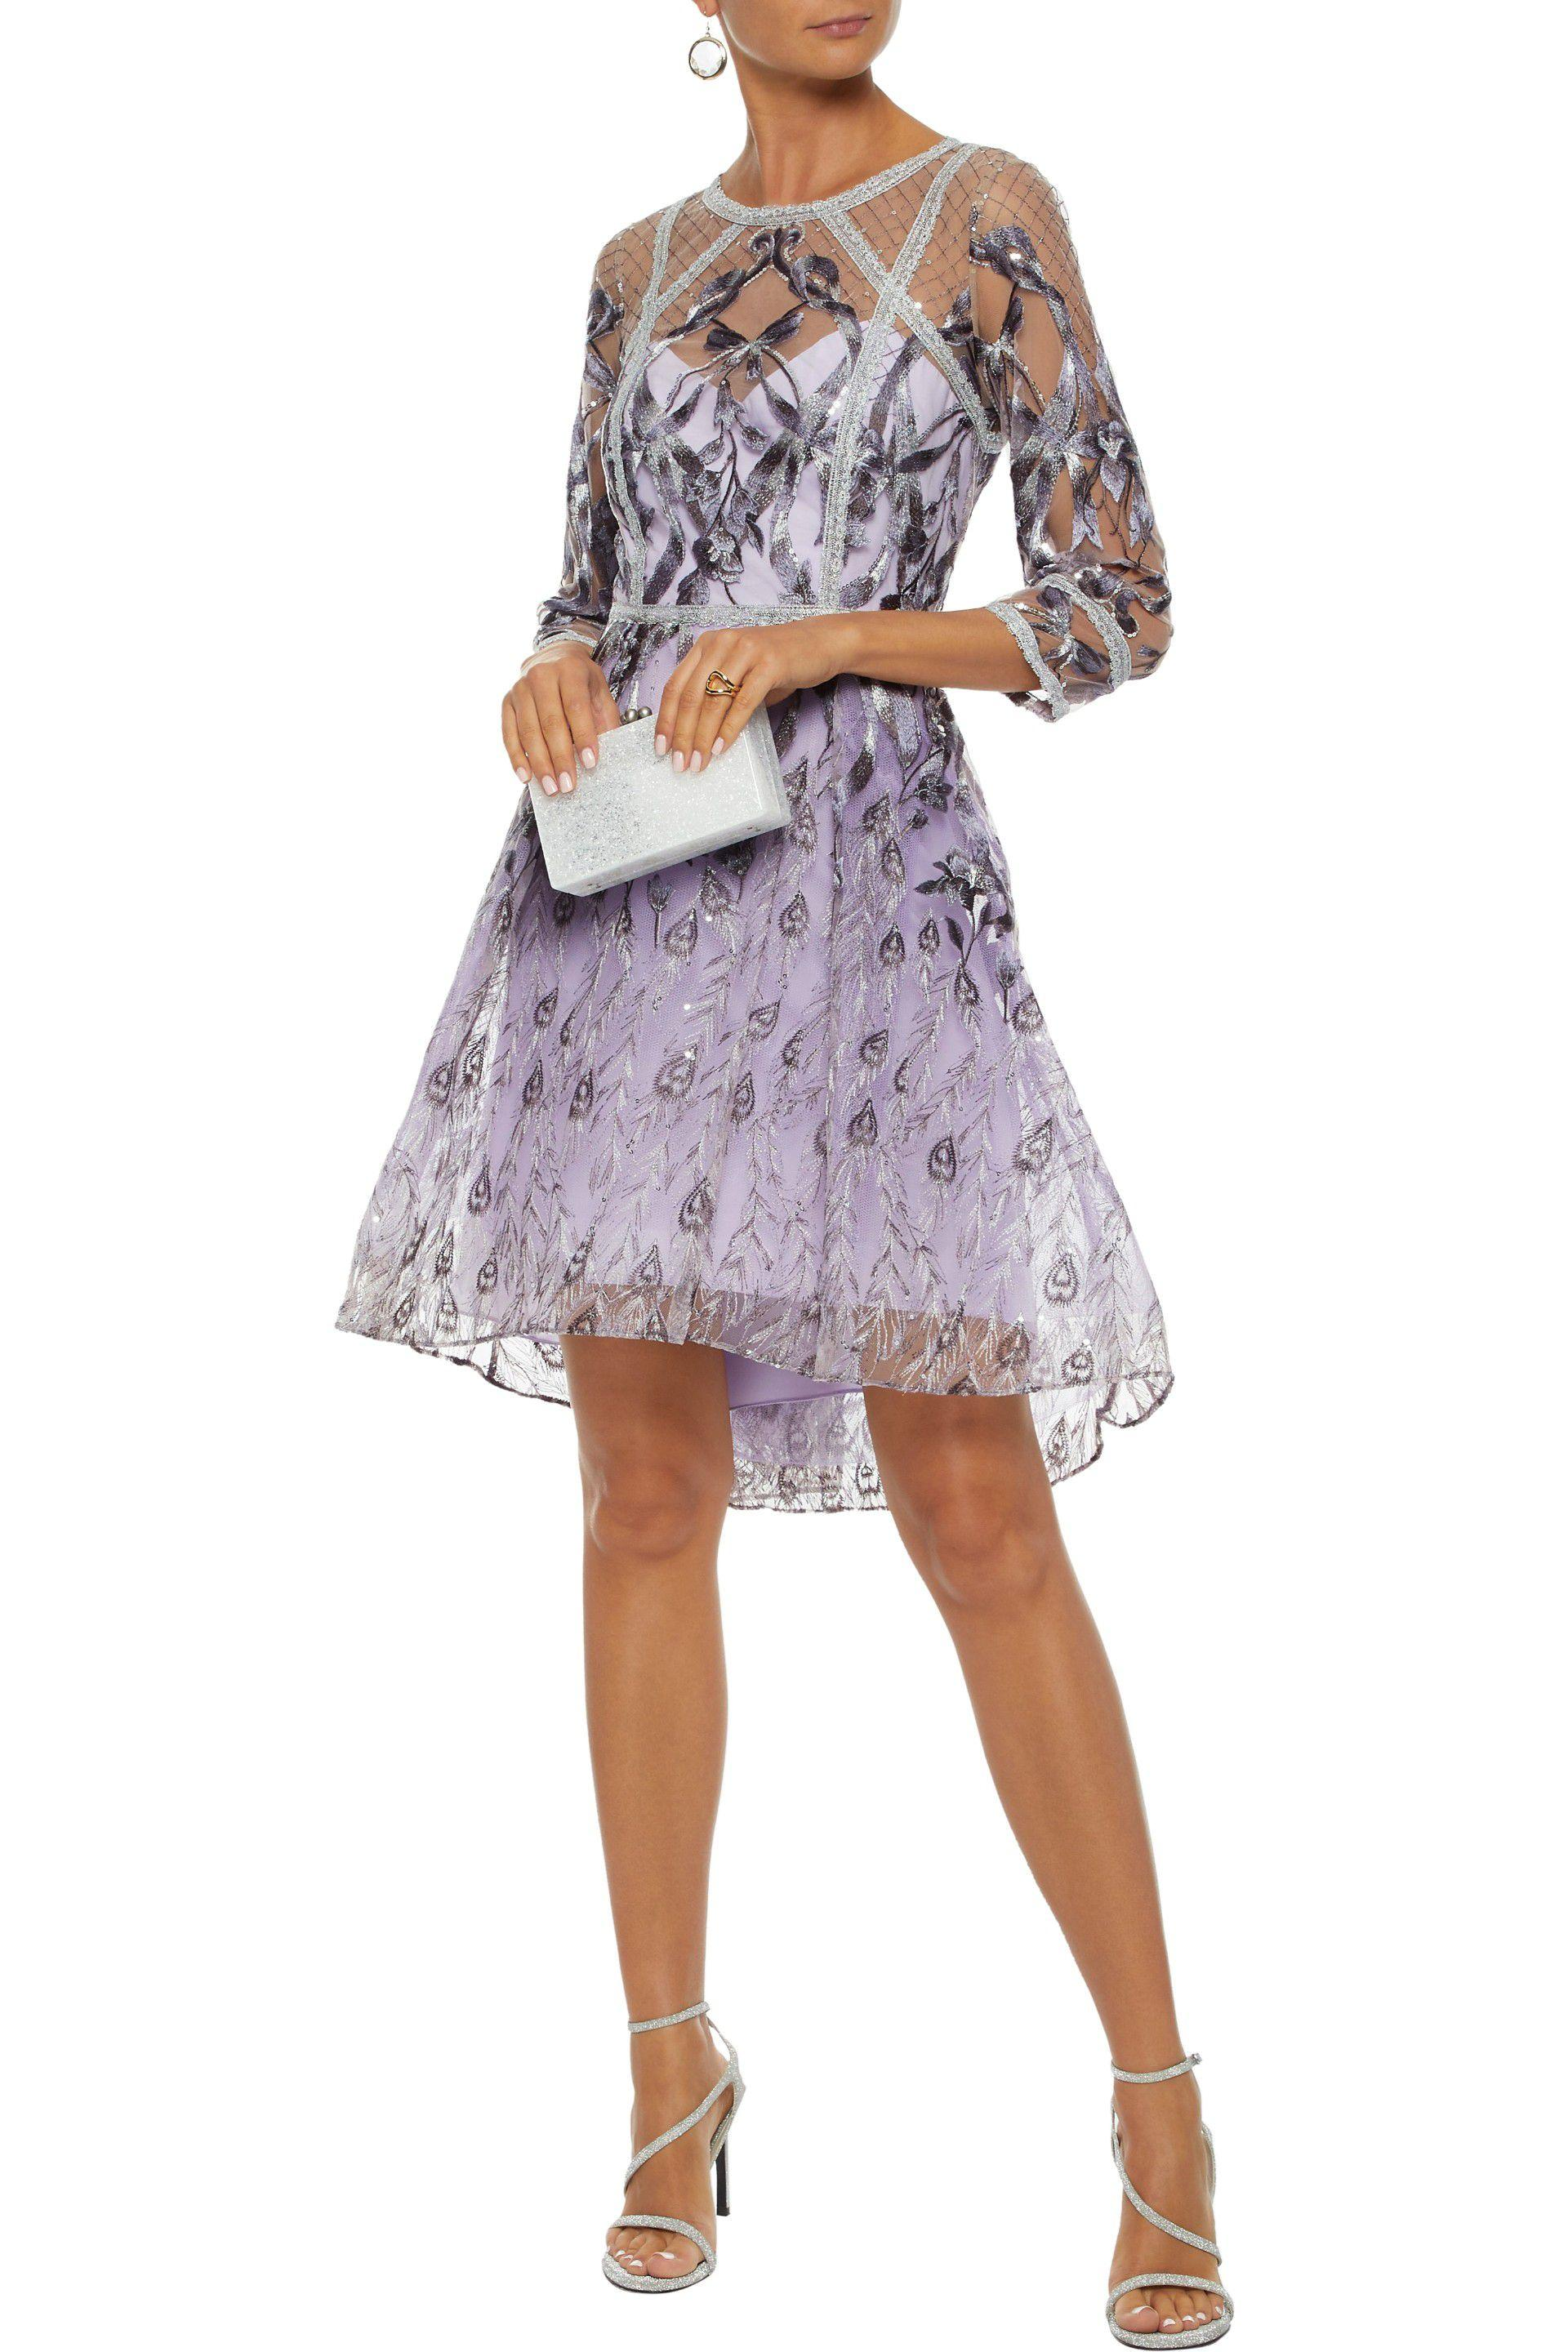 0b6c62ec Tap to visit site. Marchesa notte - Purple Woman Sequin-embellished  Metallic Embroidered Tulle Dress Lilac ...